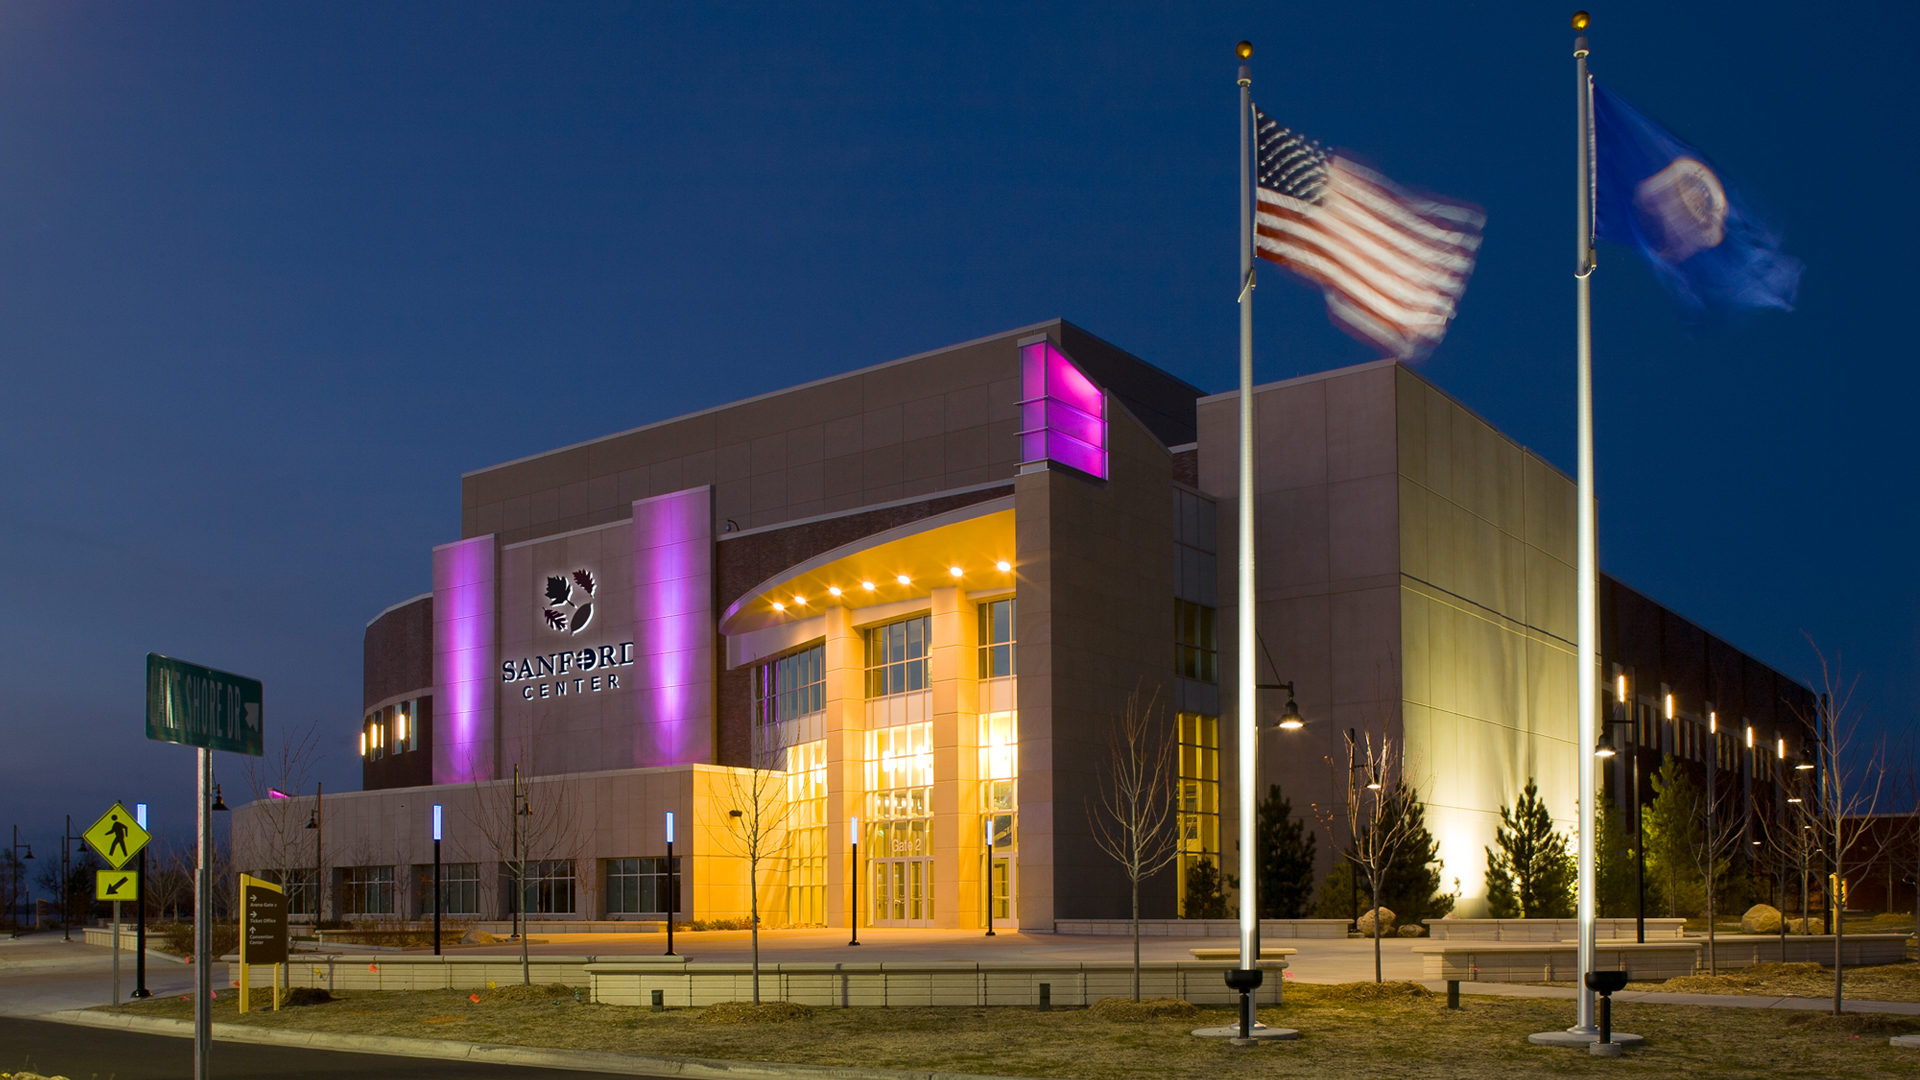 Sanford Center Ice Arena Bemidji MN Government Exterior Night Shop of Entrance